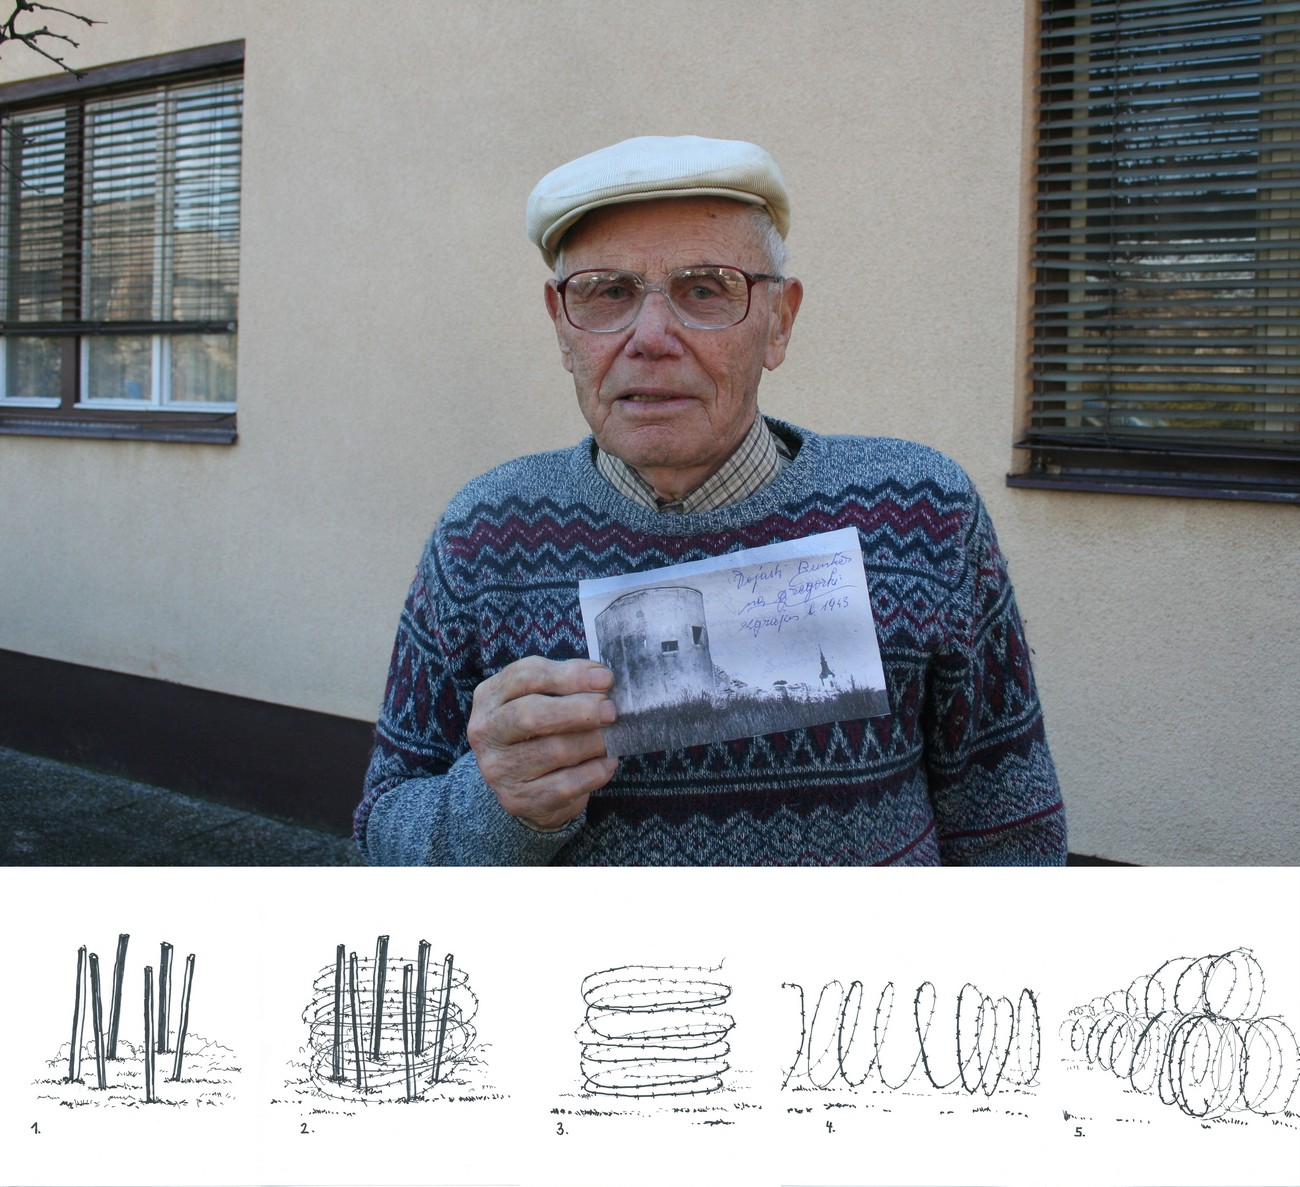 Stanislav Sluga (born 1927) from Dolenja Brezovica took part in setting up the barricade of the border between Italy and the NDH. They drove six stakes into the ground to form a circle. They wrapped the barbed wire around the stakes, then they removed the stakes and turned the wire upside down, stretching it to form a tunnel, 50m long. They placed two barbed wire tunnels on the bottom and one on top, and then connected them. Author: Božidar Flajšman.